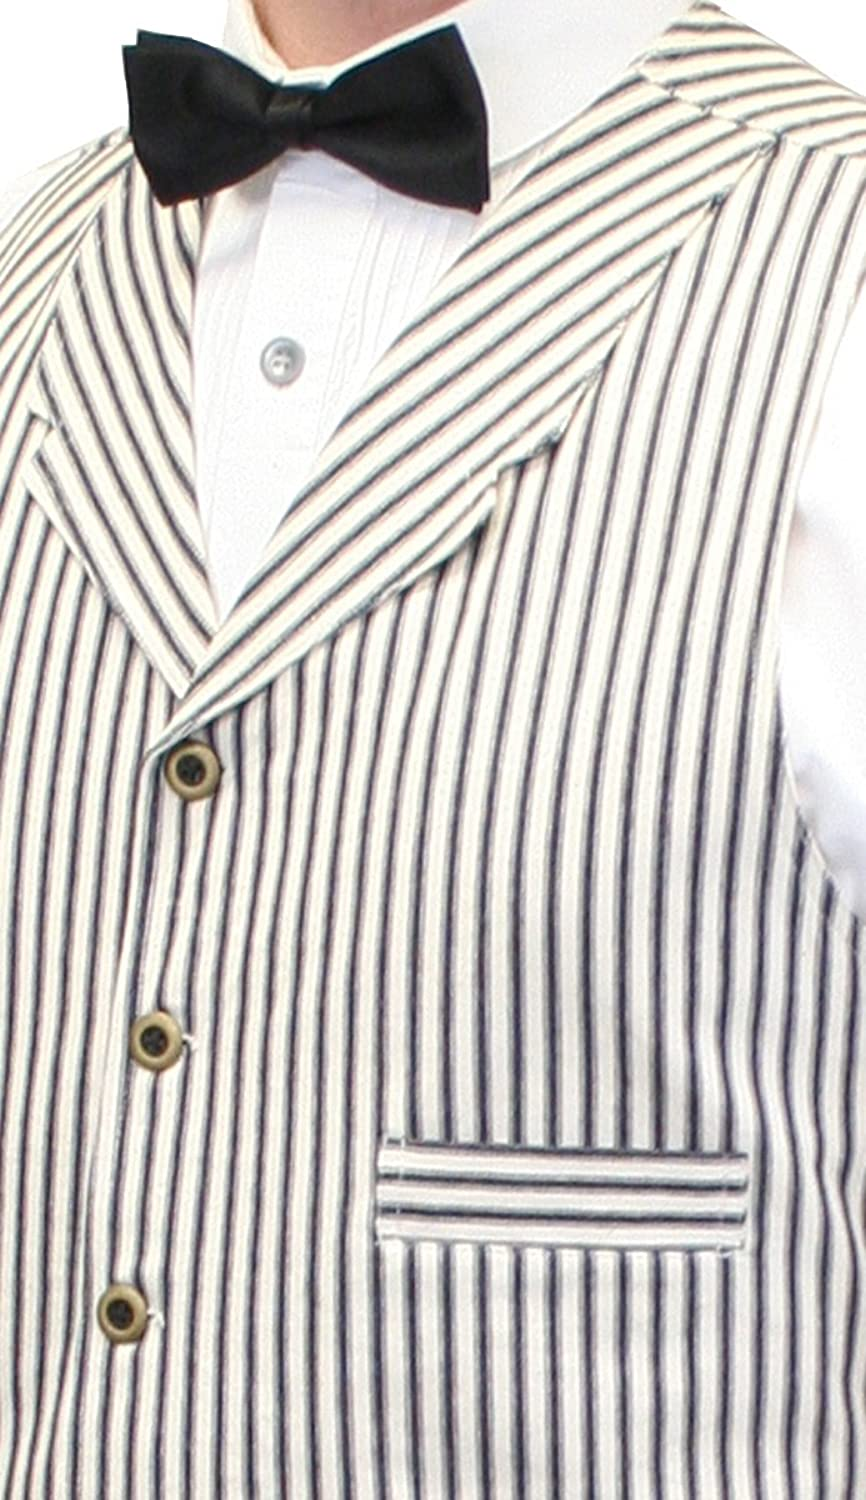 Retro Clothing for Men | Vintage Men's Fashion Historical Emporium Mens Summerhill Cotton Striped Dress Vest $59.95 AT vintagedancer.com